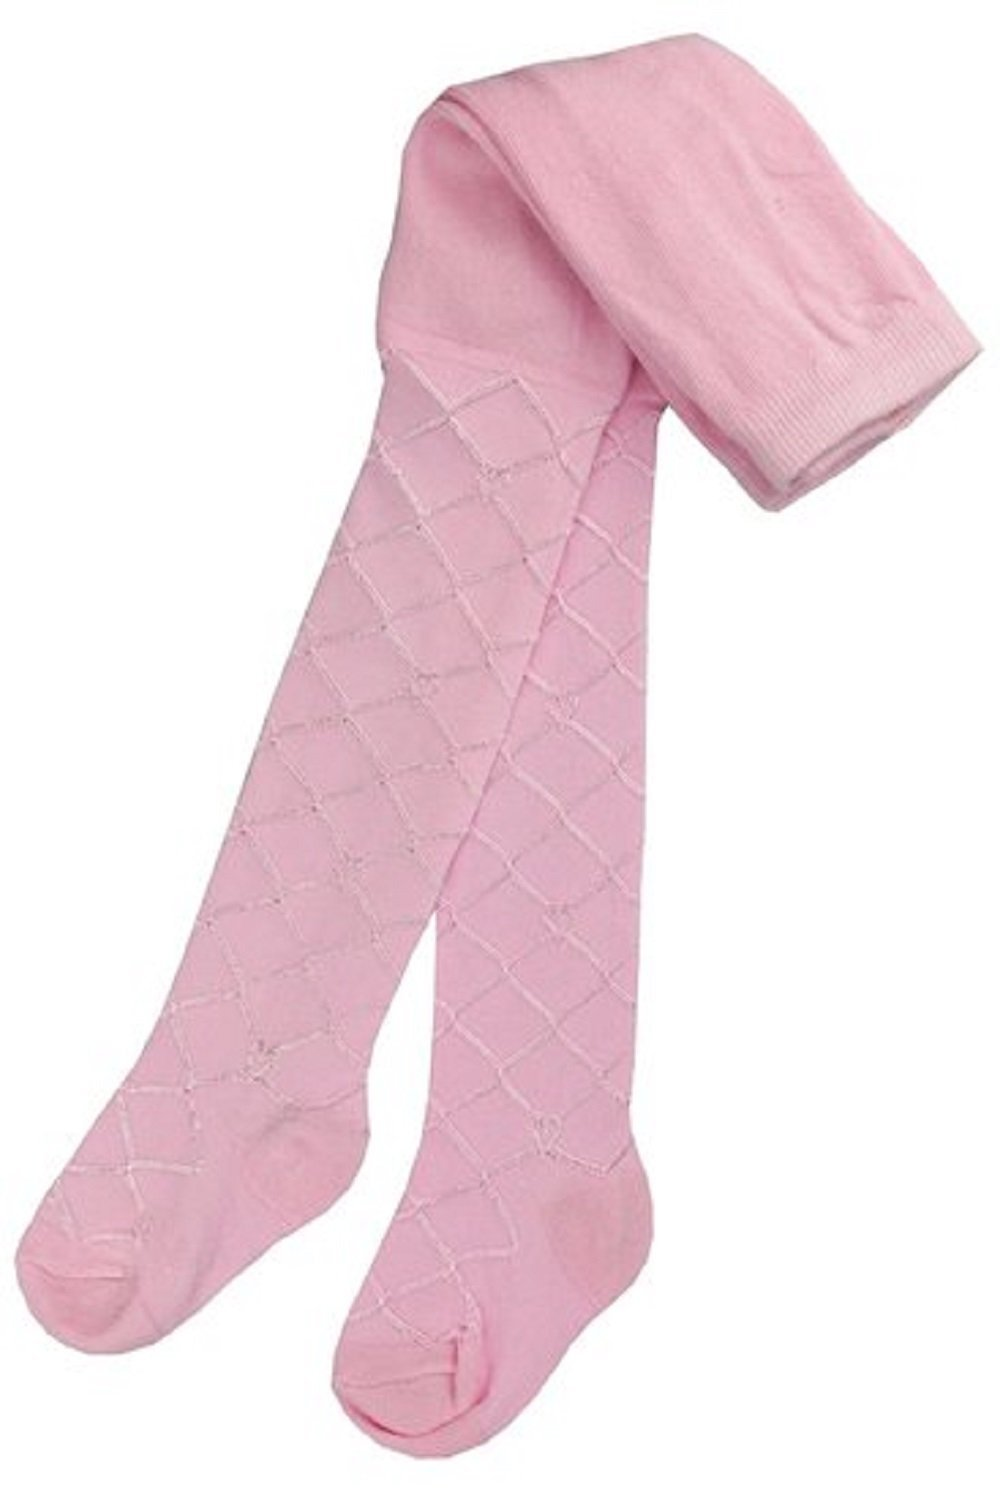 Baby Girls Tights Diamond Lattice Christening Lace Silky 0-24 Months in Pink, White, Cream